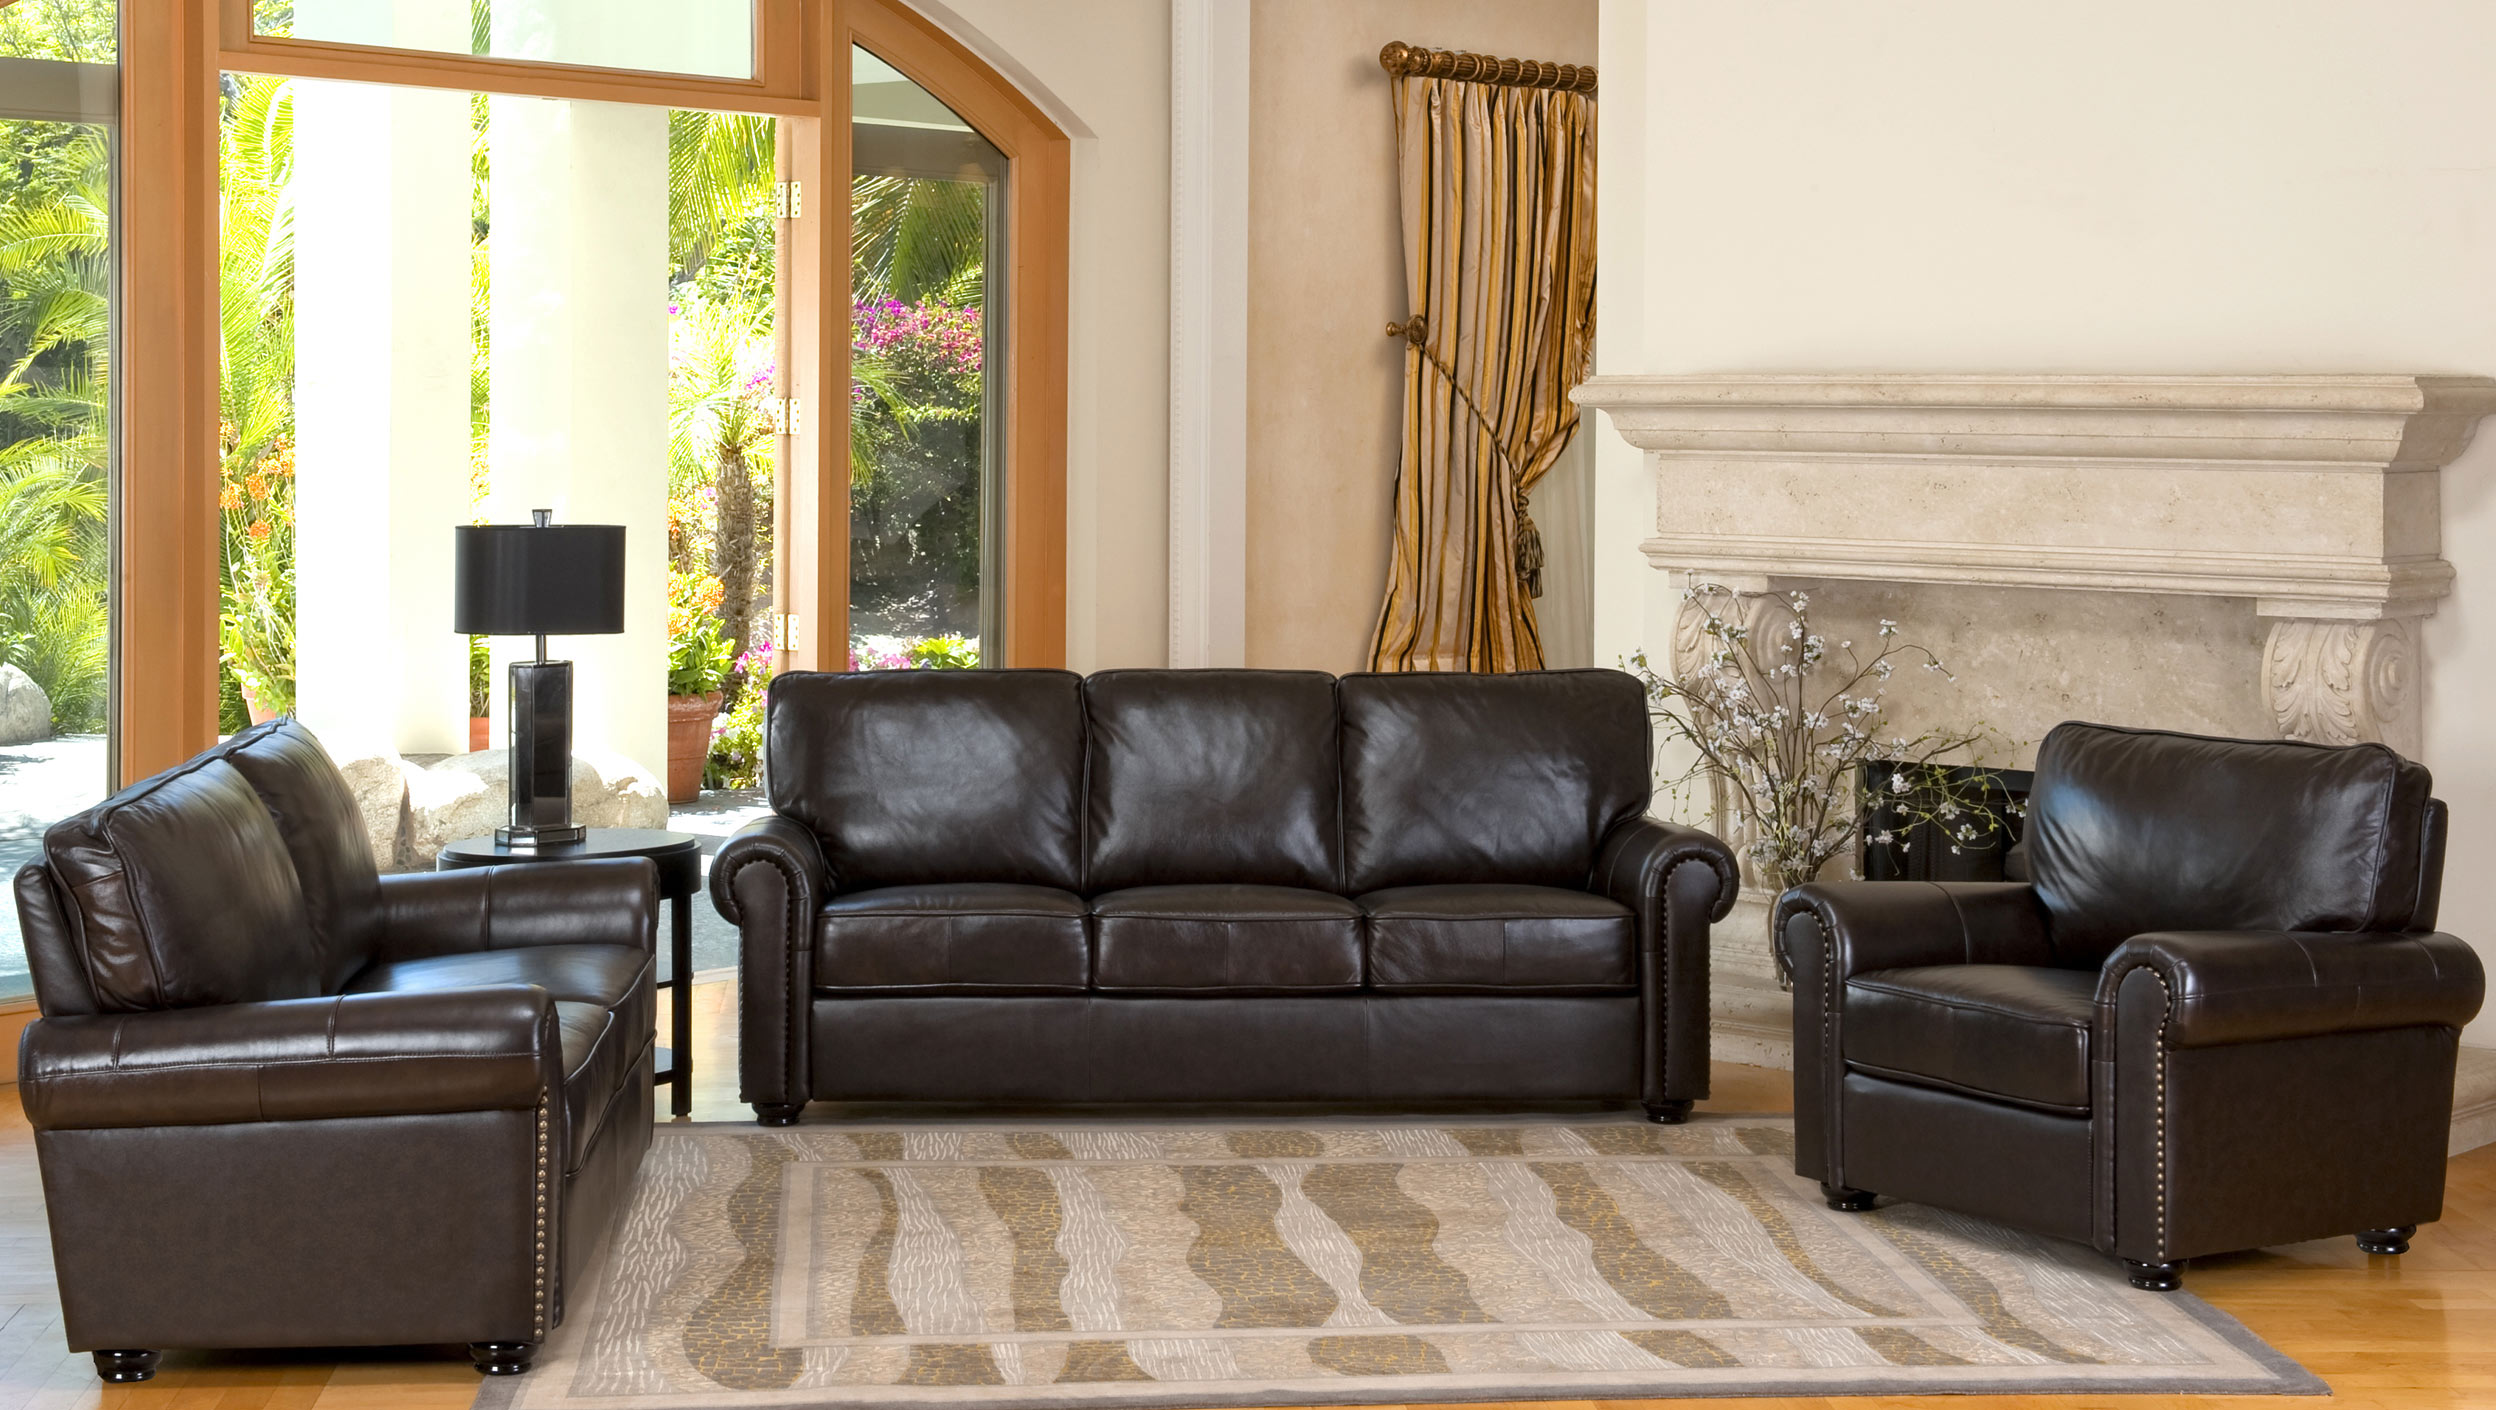 Furniture For Your Home Mor Furniture Living Room Sets Roy Home Design